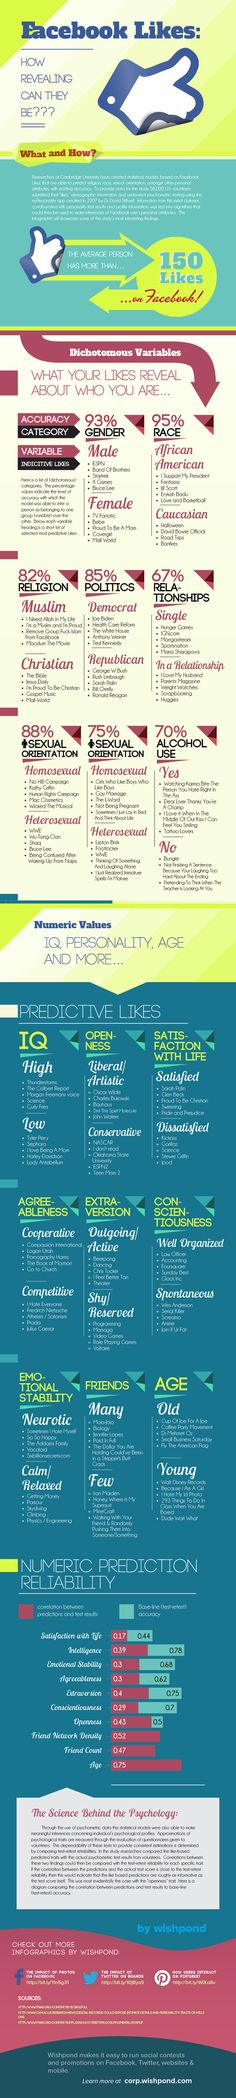 [Infographic] Facebook Likes: How Revealing Can They Be? - See more at: http://blog.wishpond.com/post/57728765578/infographic-facebook-likes-how-revealing-can-they?utm_source=buffer_campaign=Buffer_content=bufferf78bb_medium=twitter#sthash.1DsLzwh0.dpuf